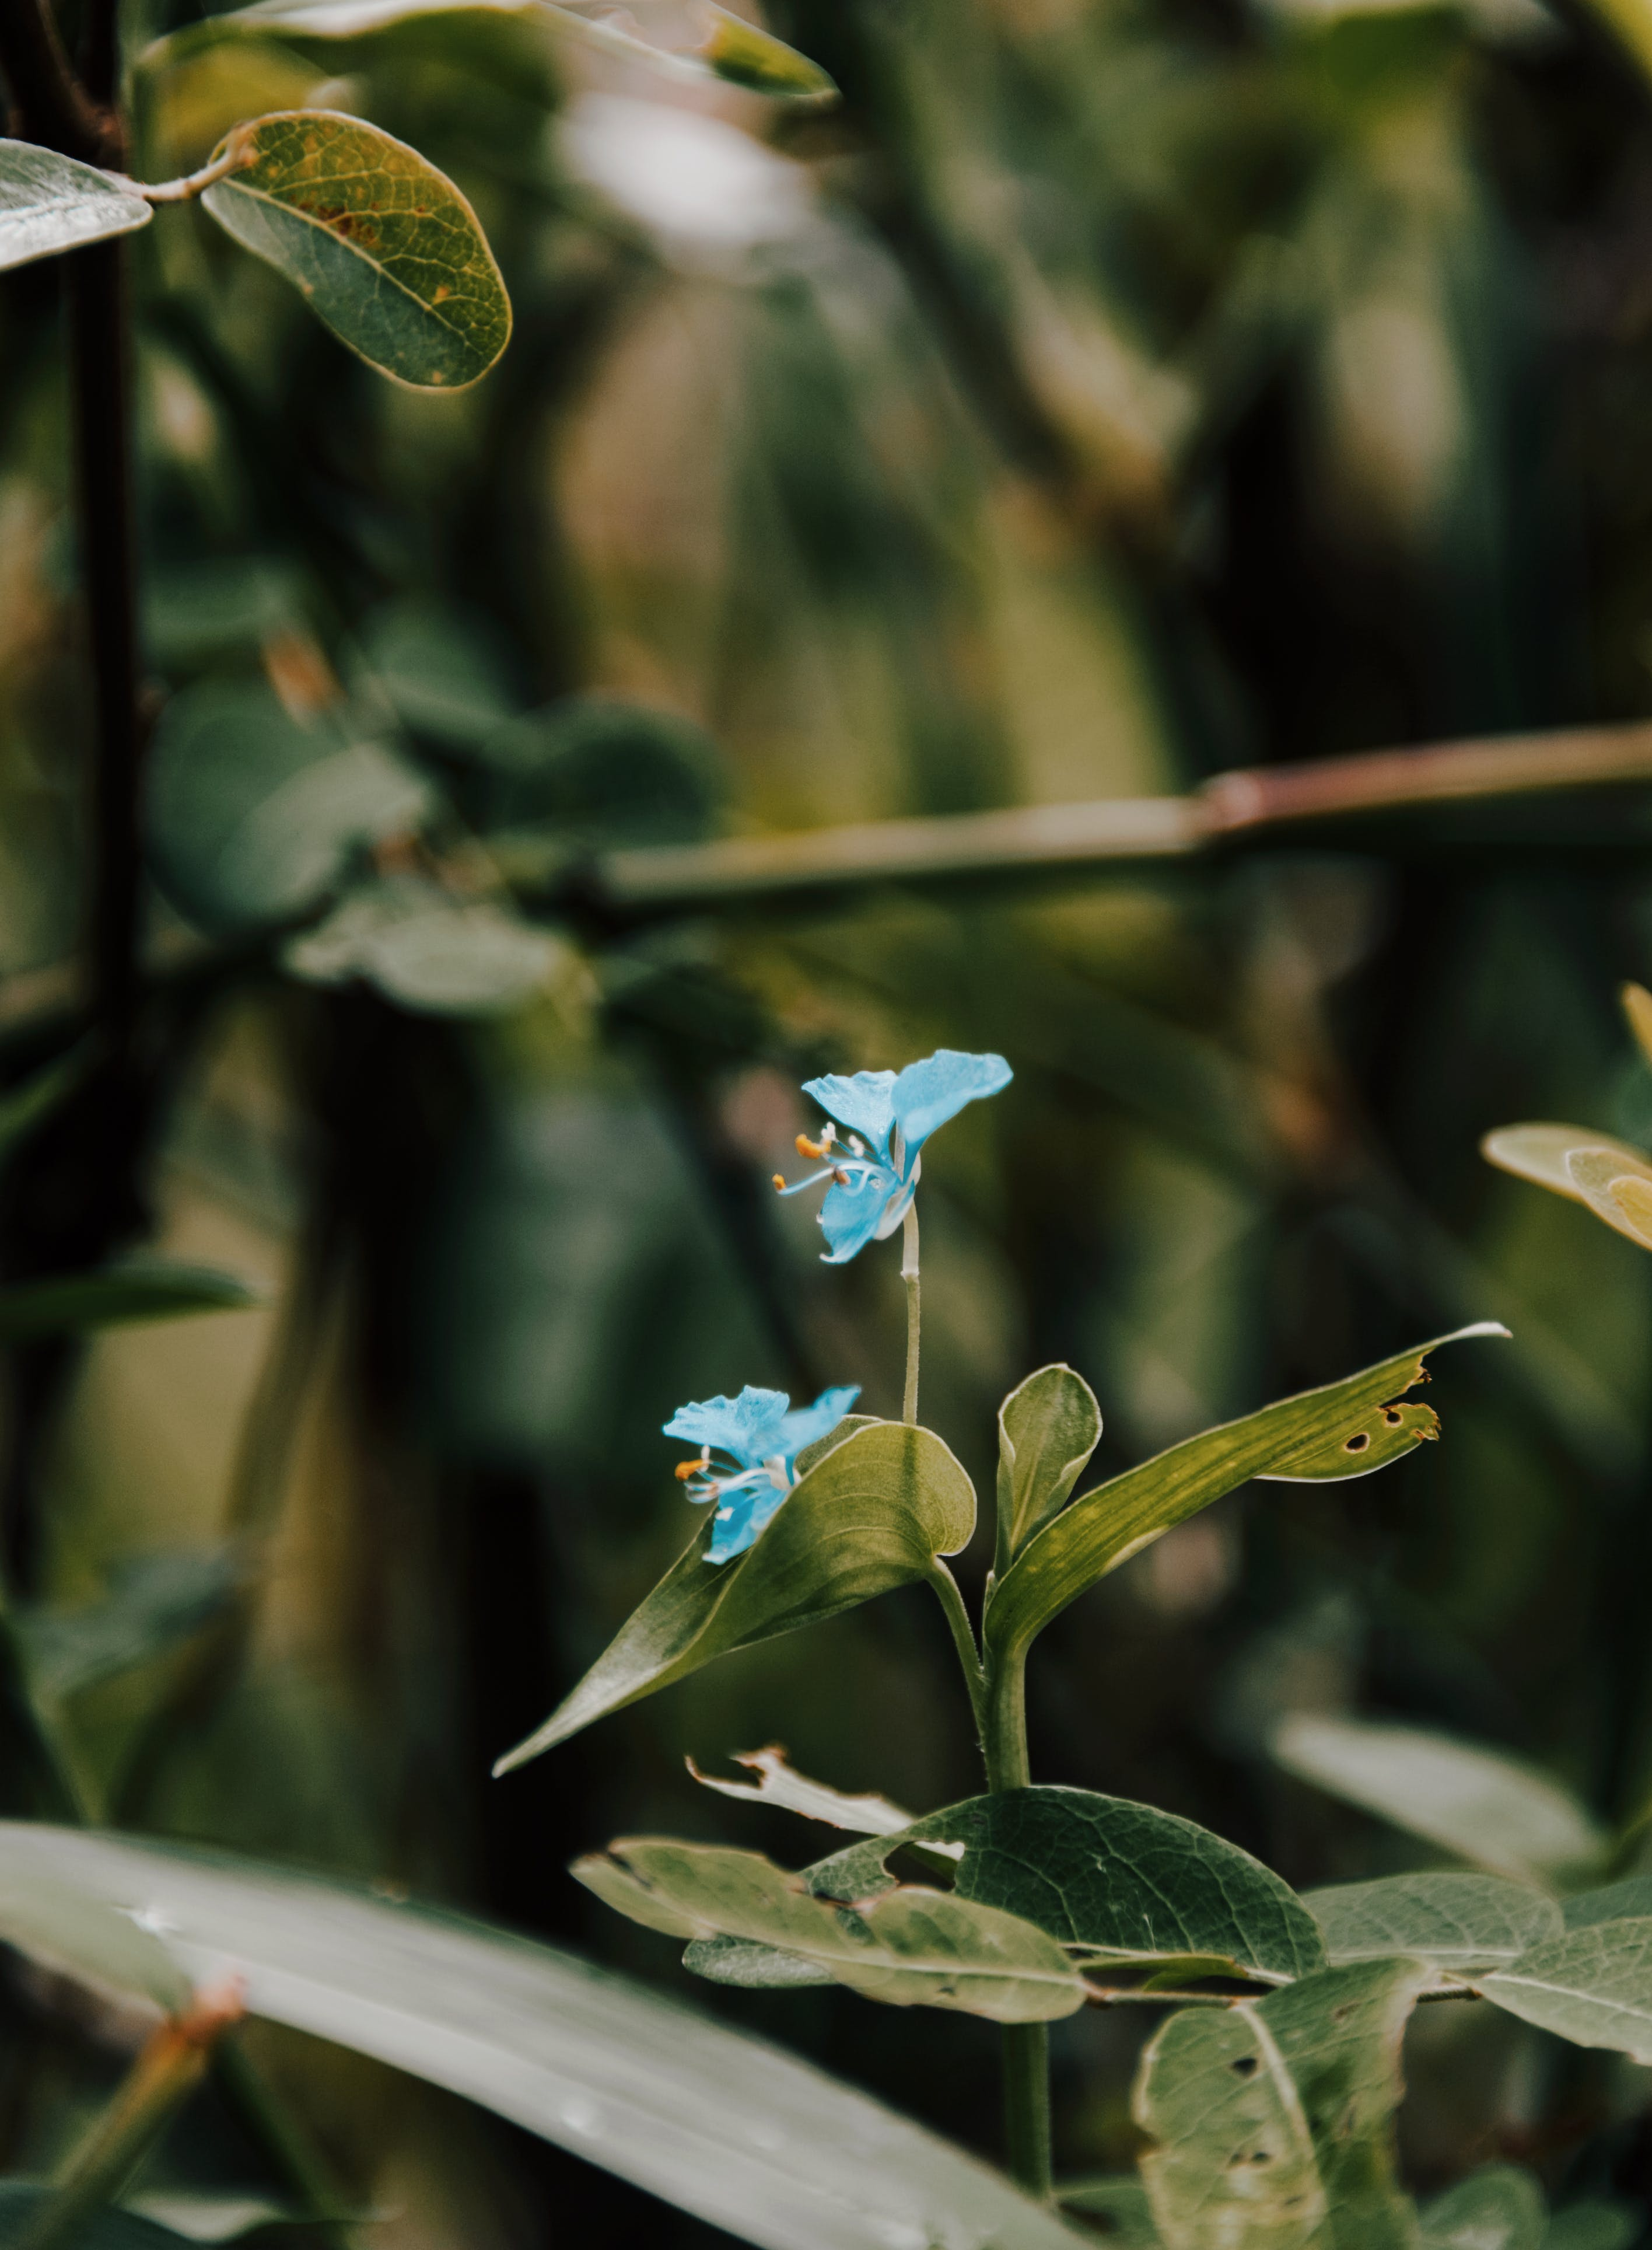 Close-Up Photo of Blue Flowers